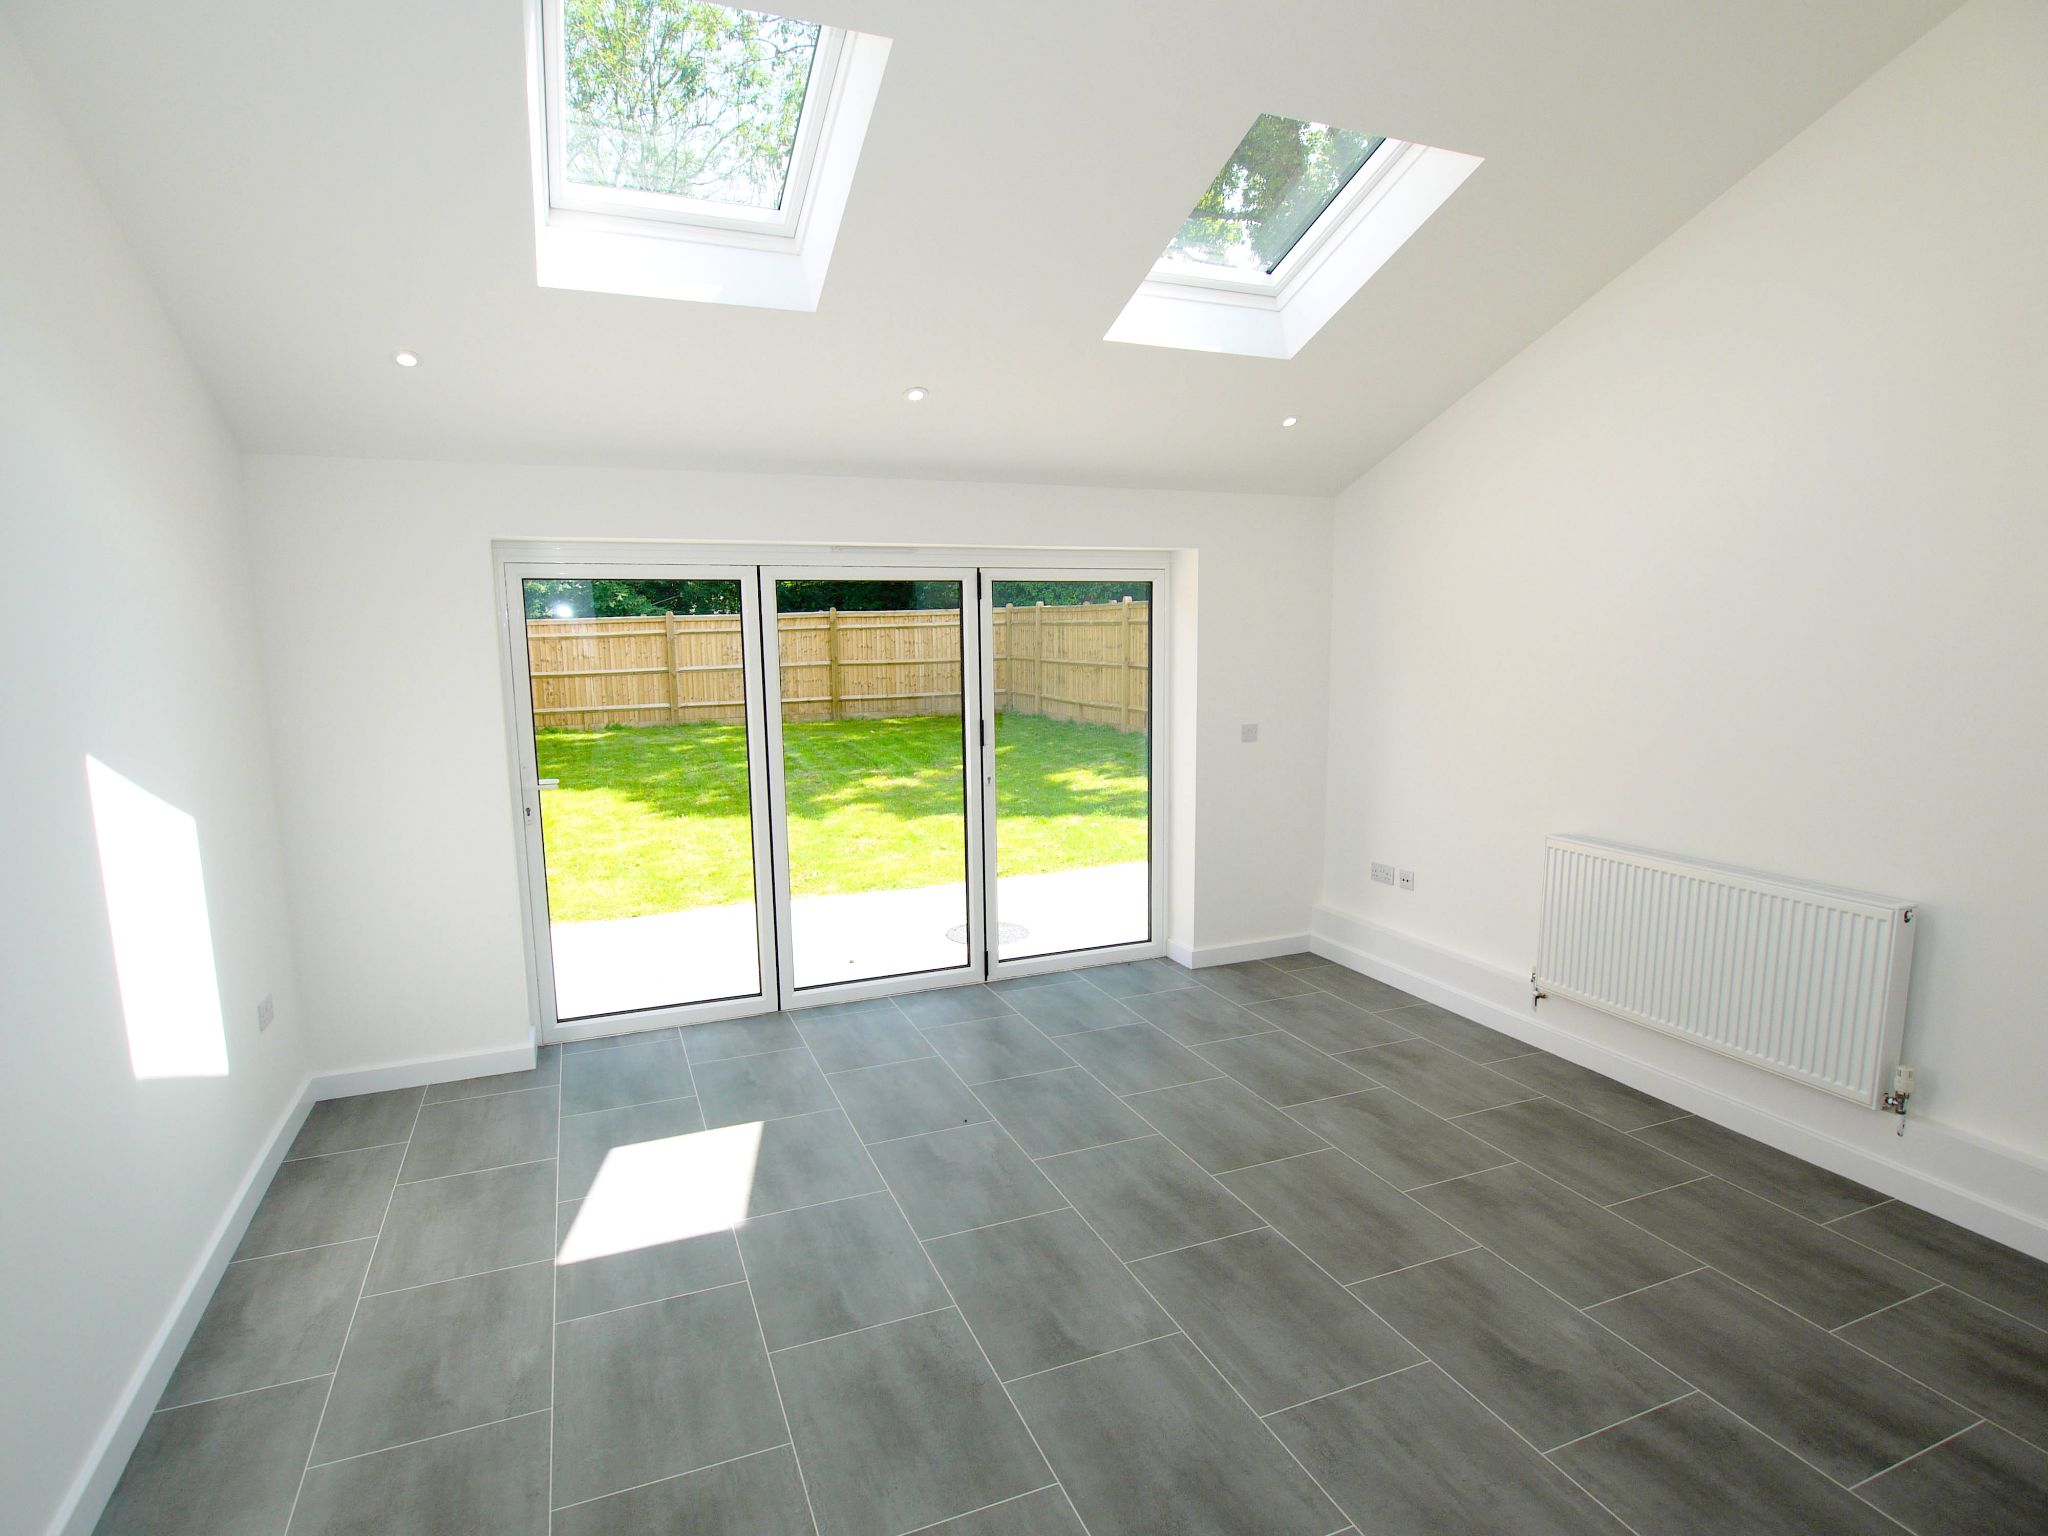 4 bedroom end terraced house Sold in Tonbridge - Photograph 2